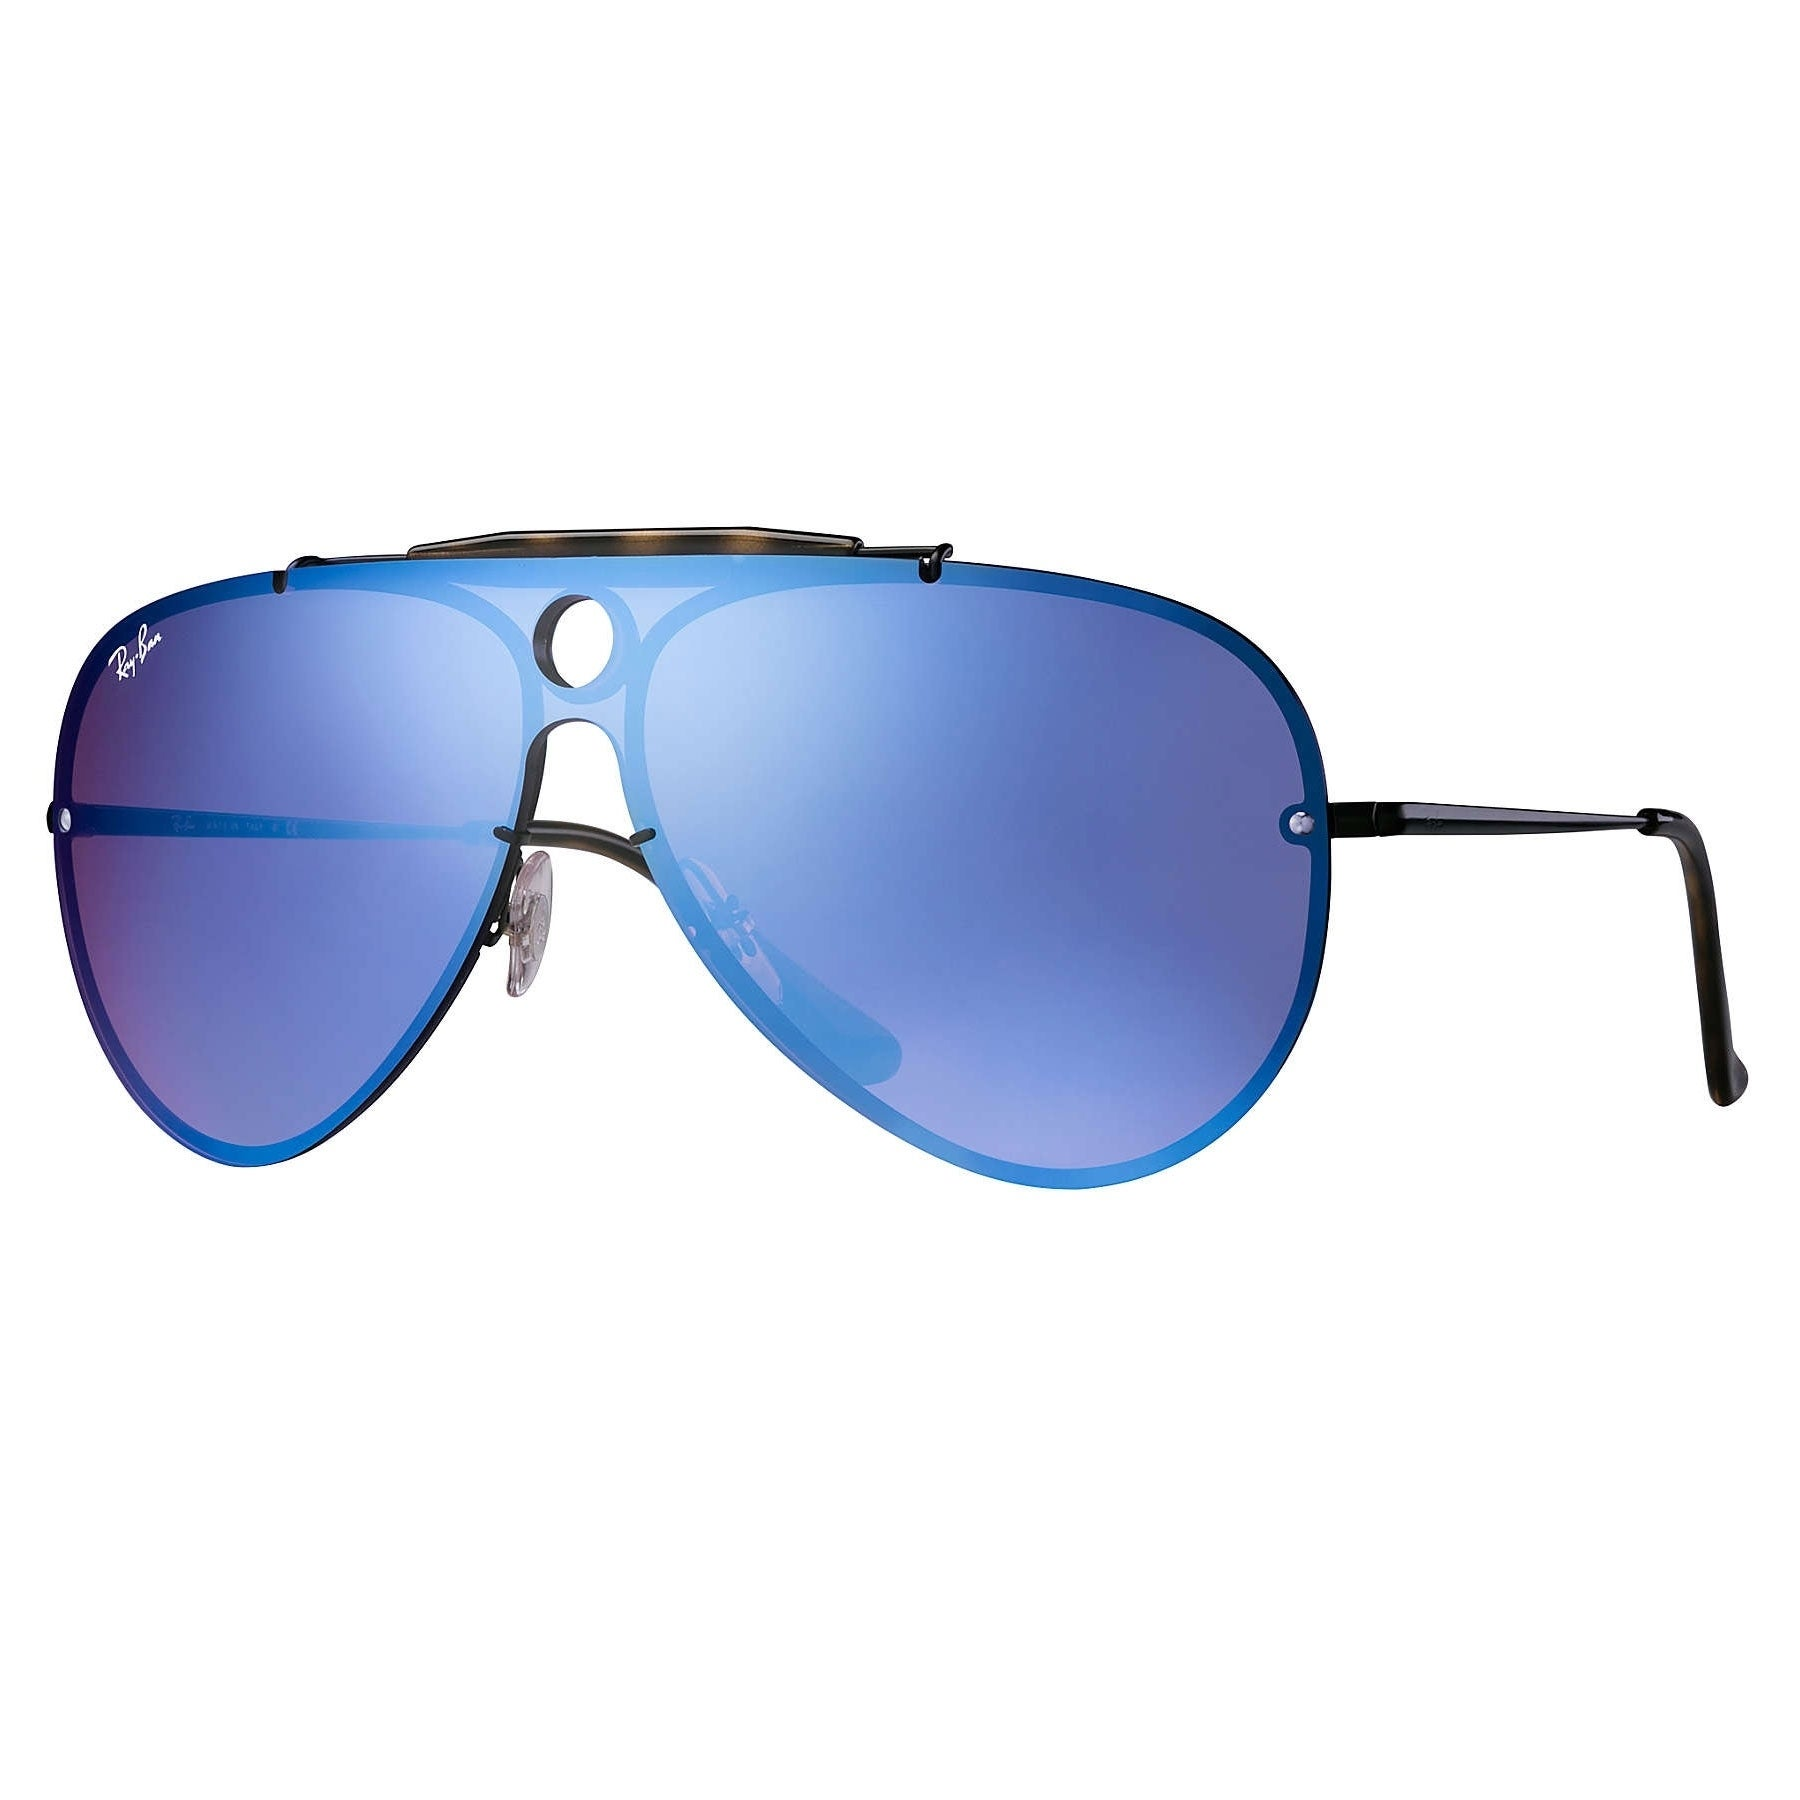 c4afef8b7957 Shop Ray-Ban RB3581N Blaze Sunglasses Black/ Violet & Blue Mirror 32mm -  Free Shipping Today - Overstock - 20457188